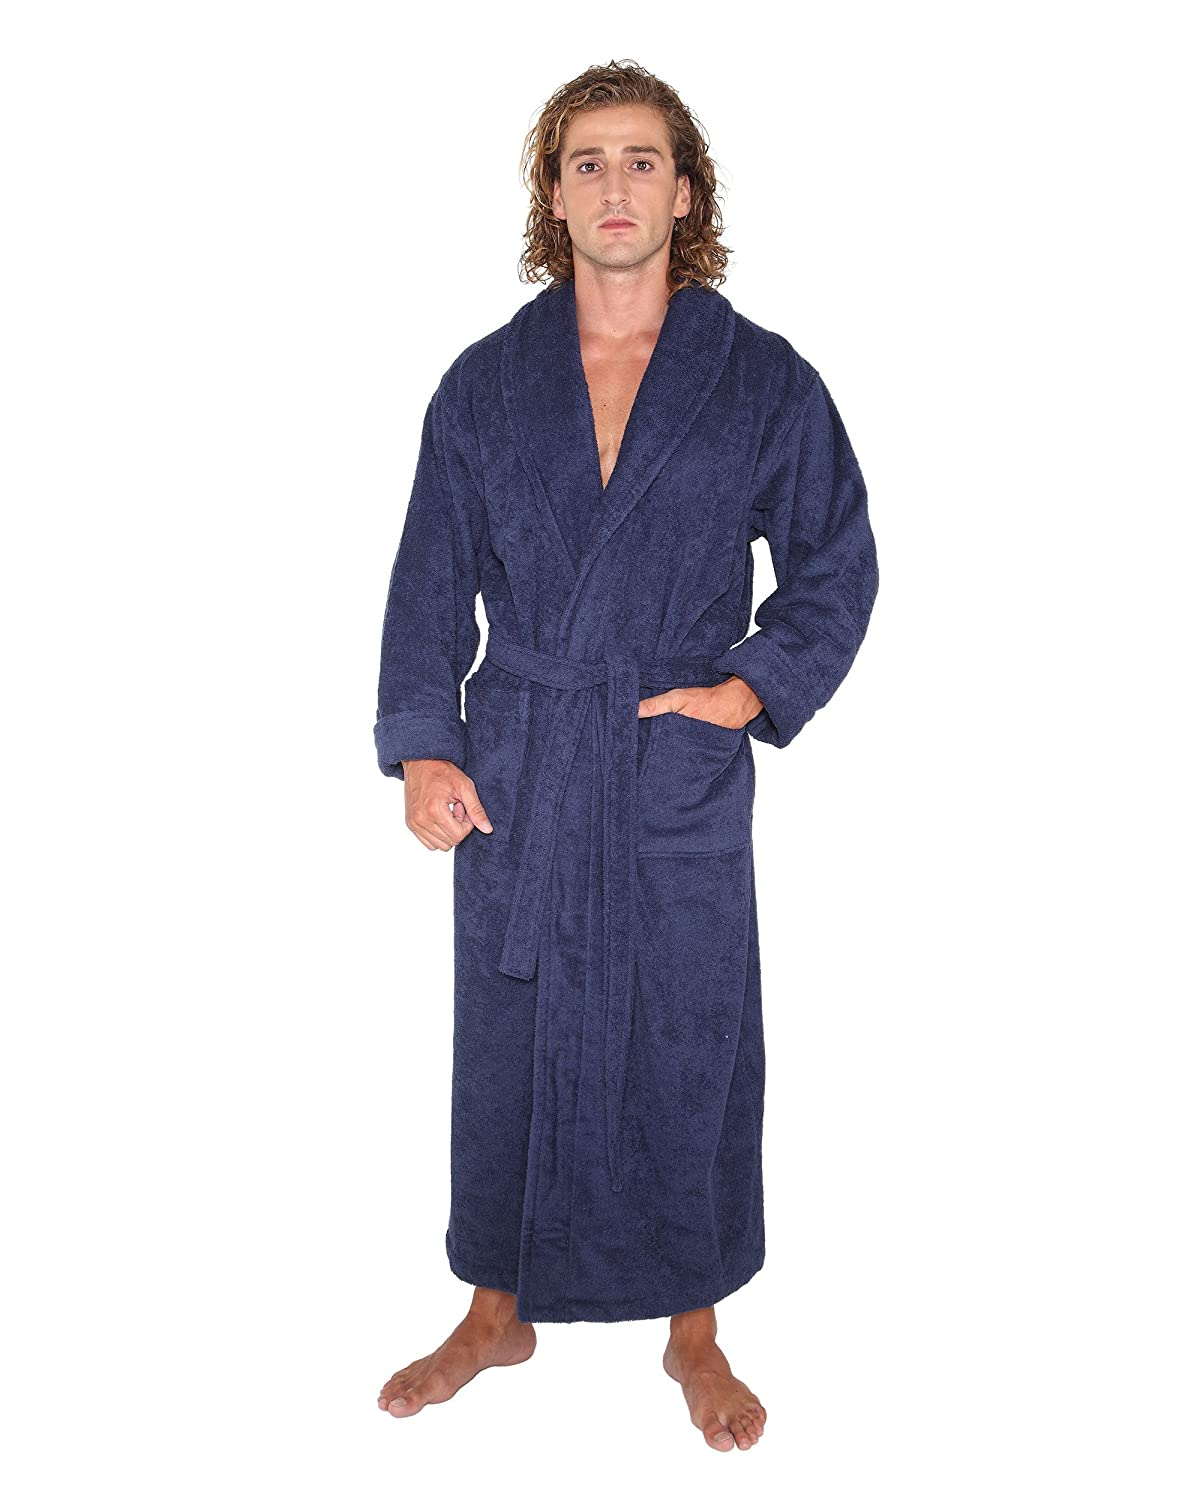 Arus Bathrobe Optimal, Navy Blue, M